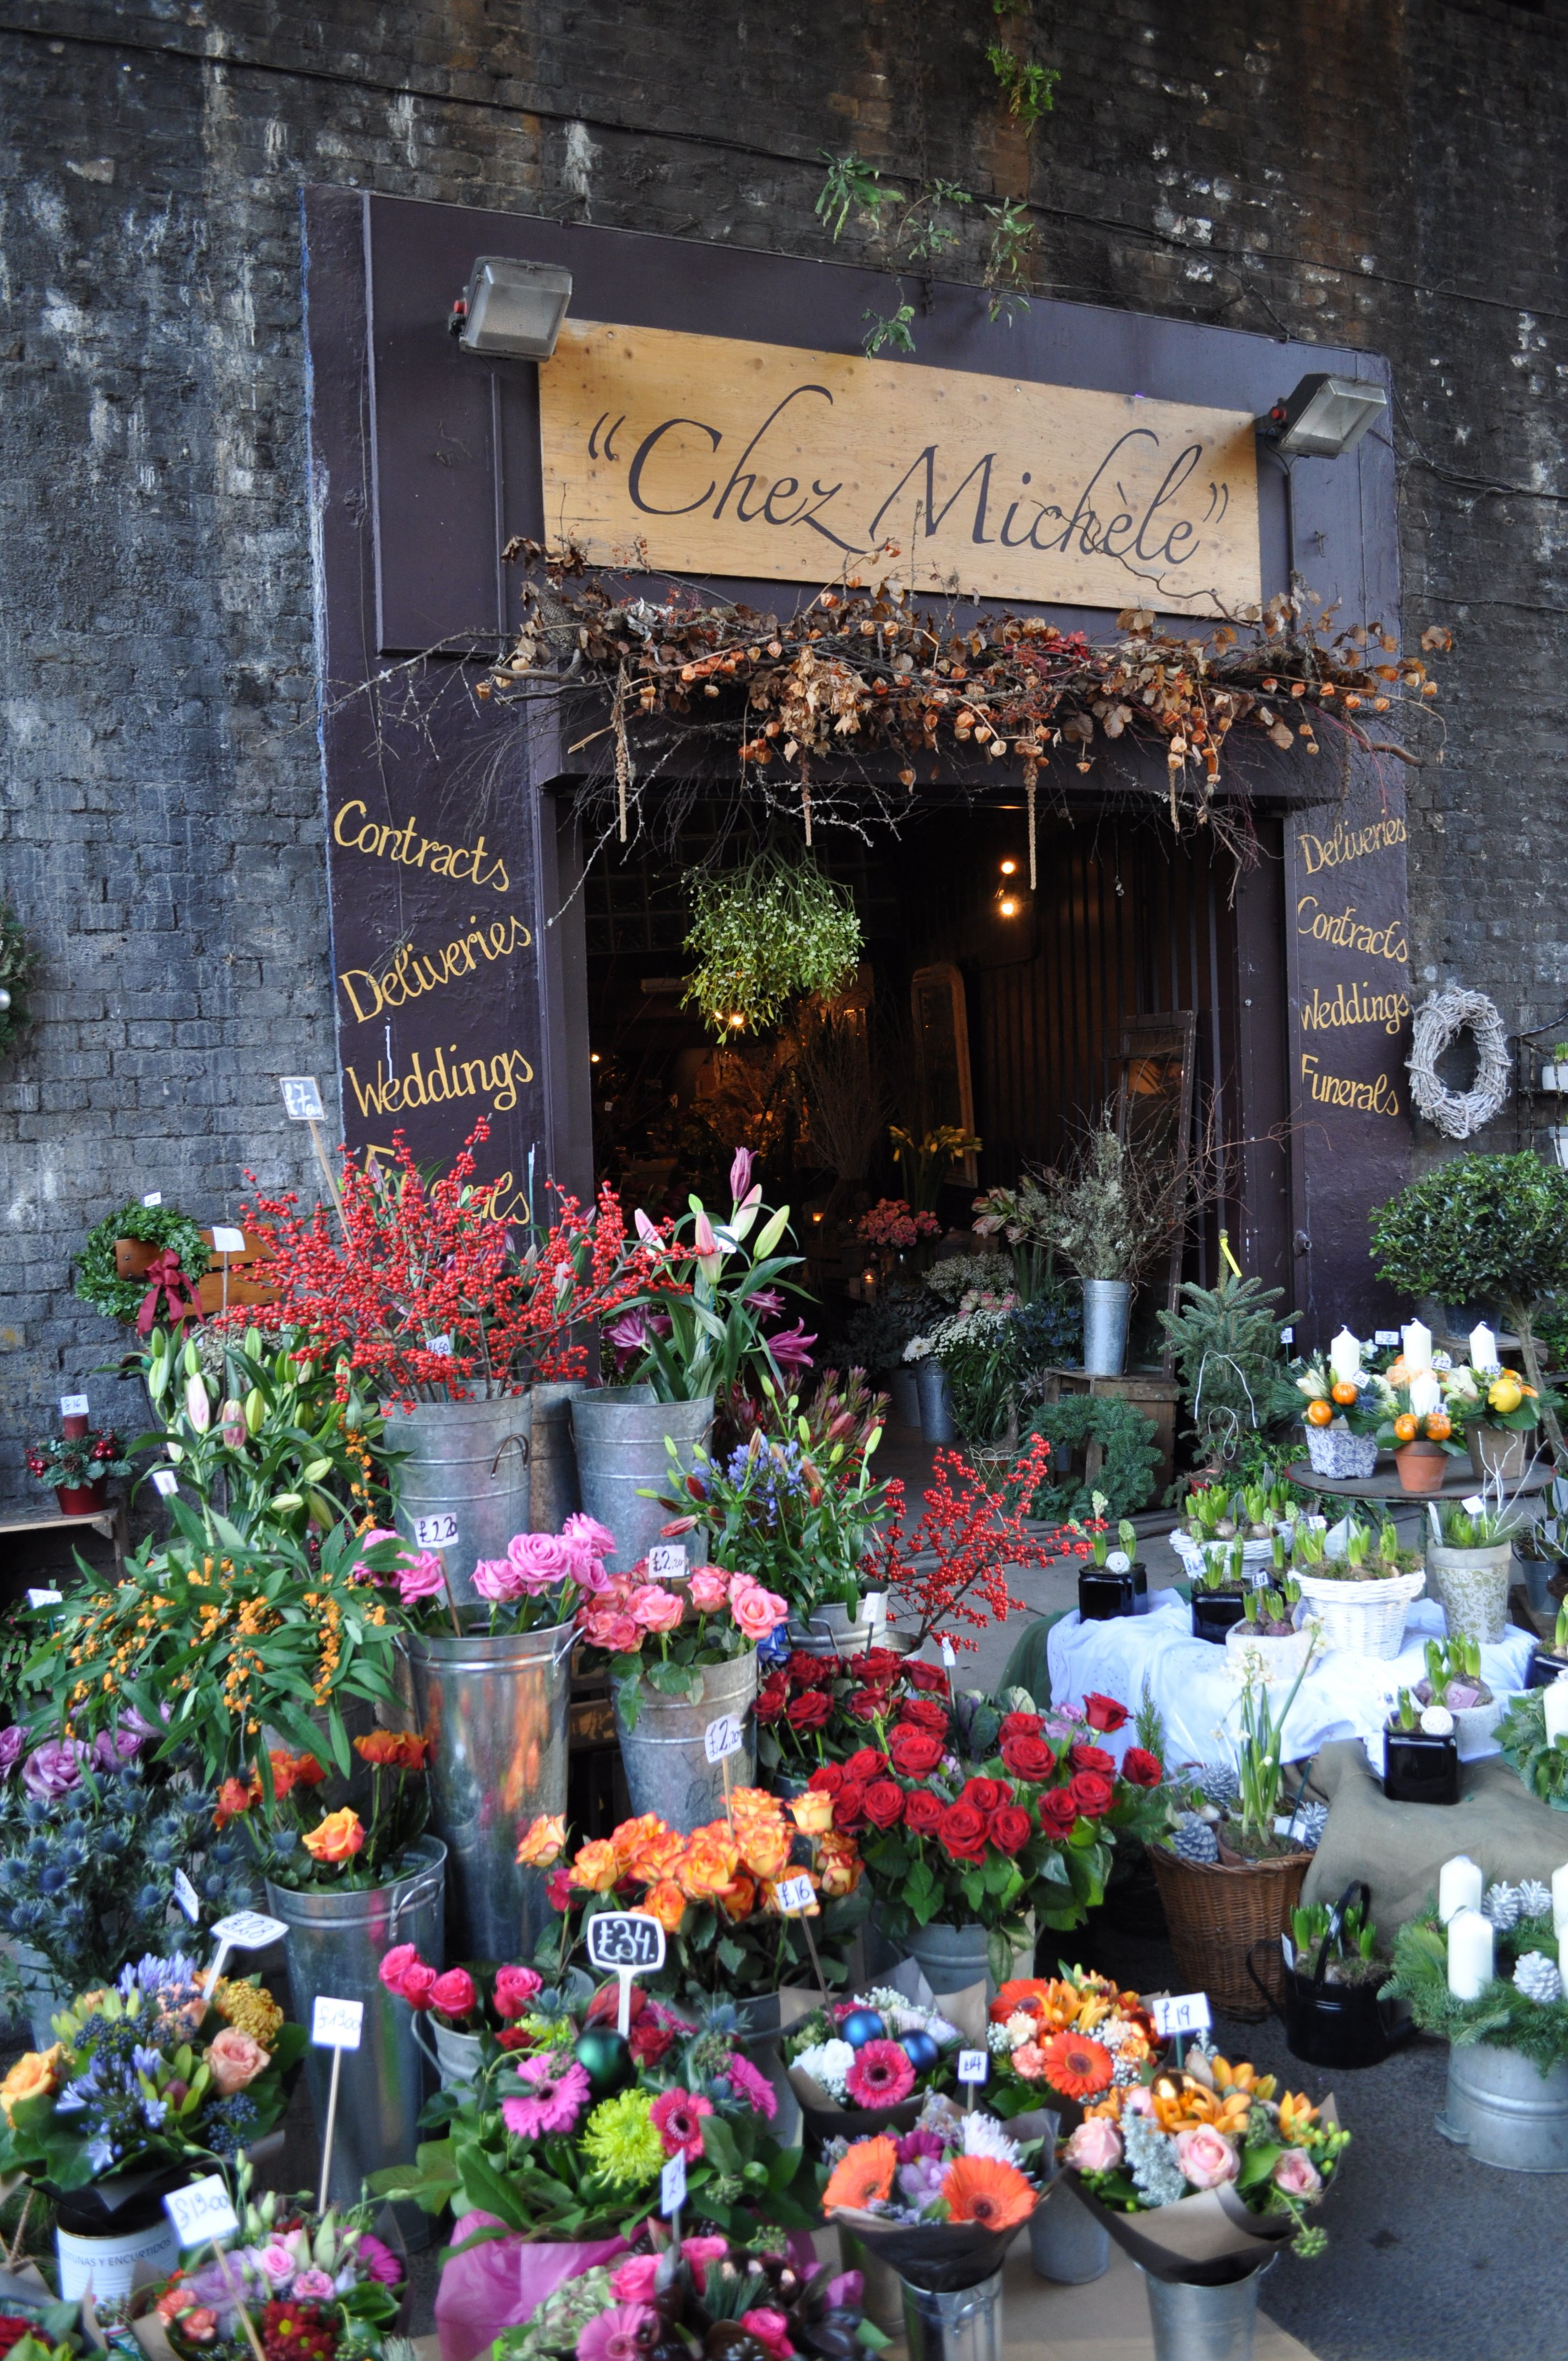 Pin by s t e f a n i on london pinterest flower shops flower beautiful flowers and look at the sign izmirmasajfo